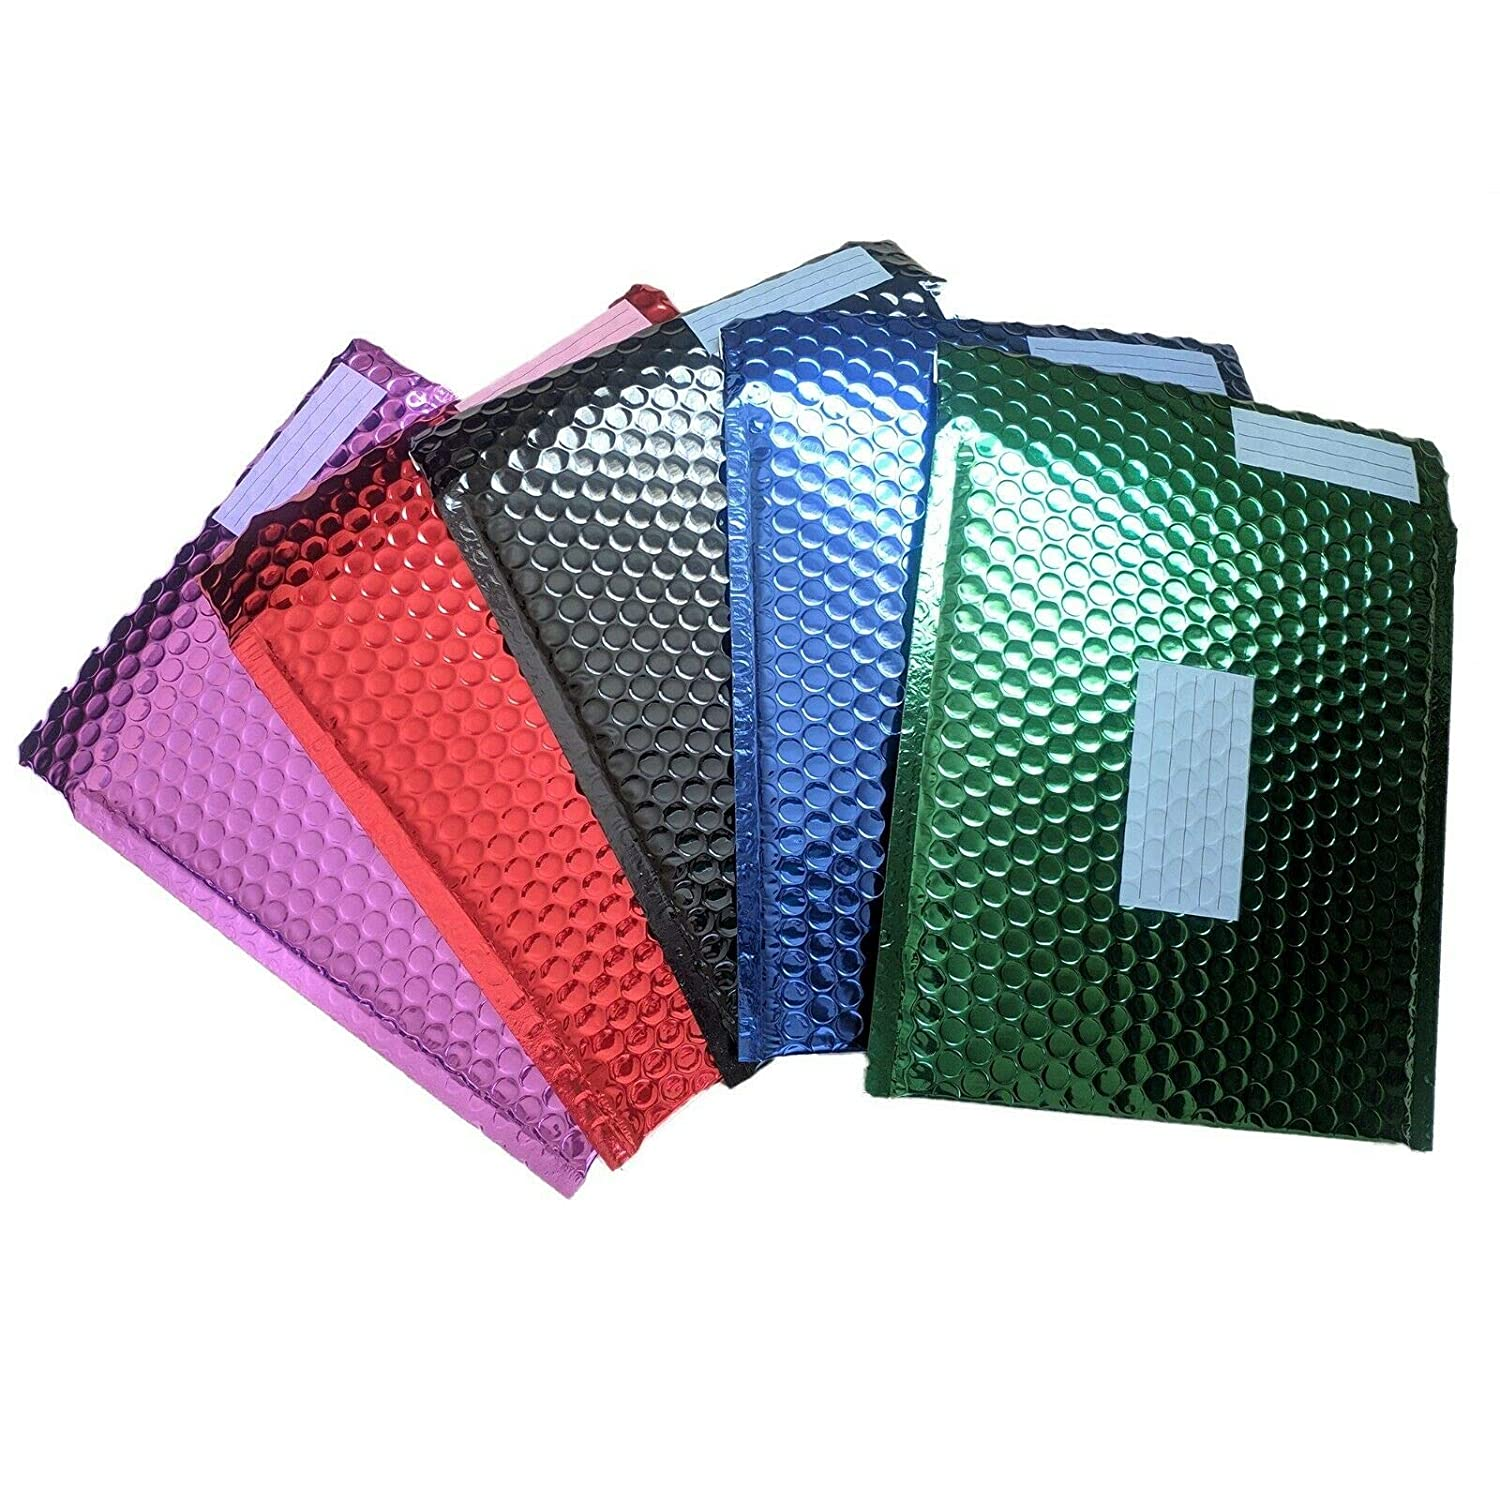 Mailing Envelopes Metallic Bubble Padded 100 Pack of 1 Colour from Assorted 330 x 240 mm